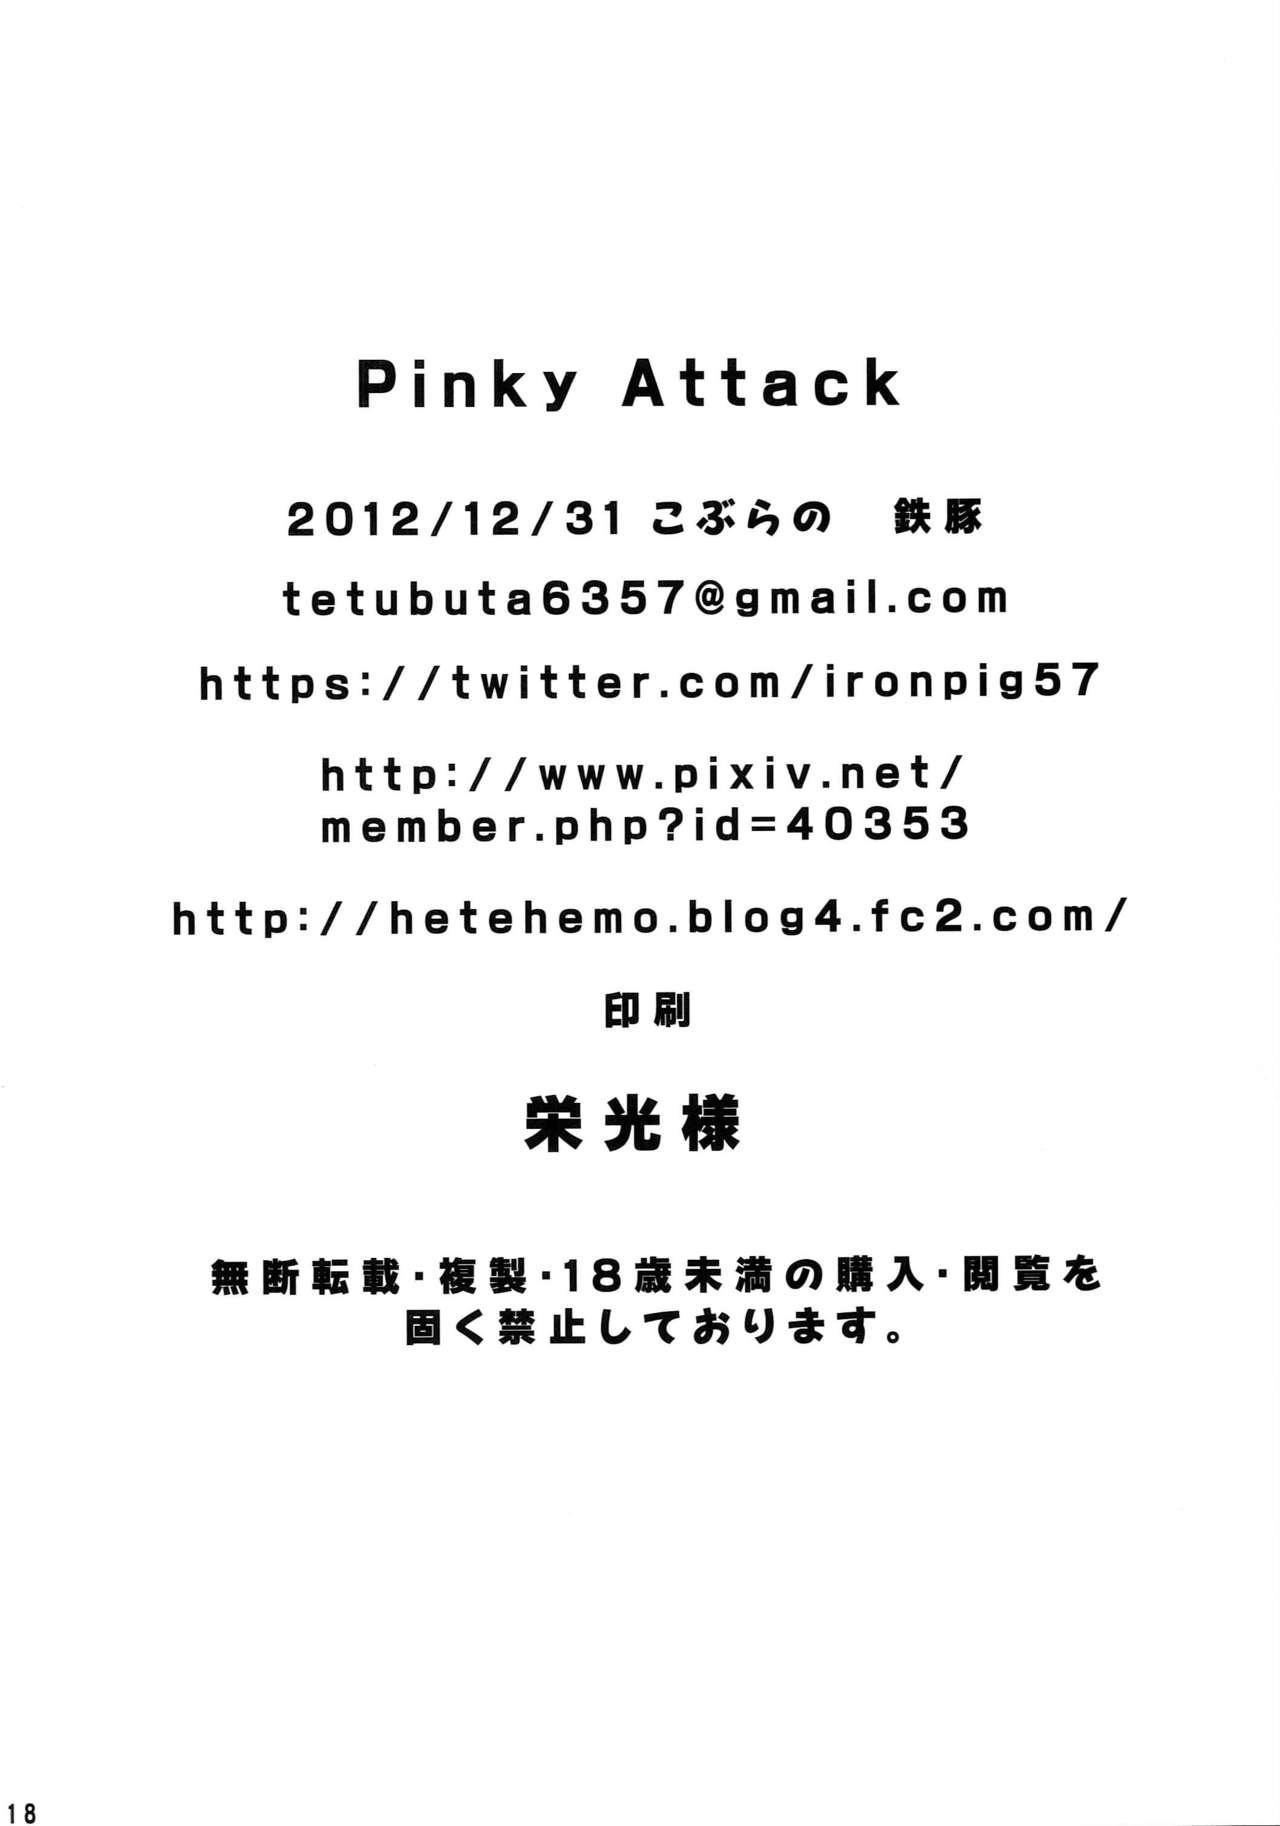 Pinky Attack 16